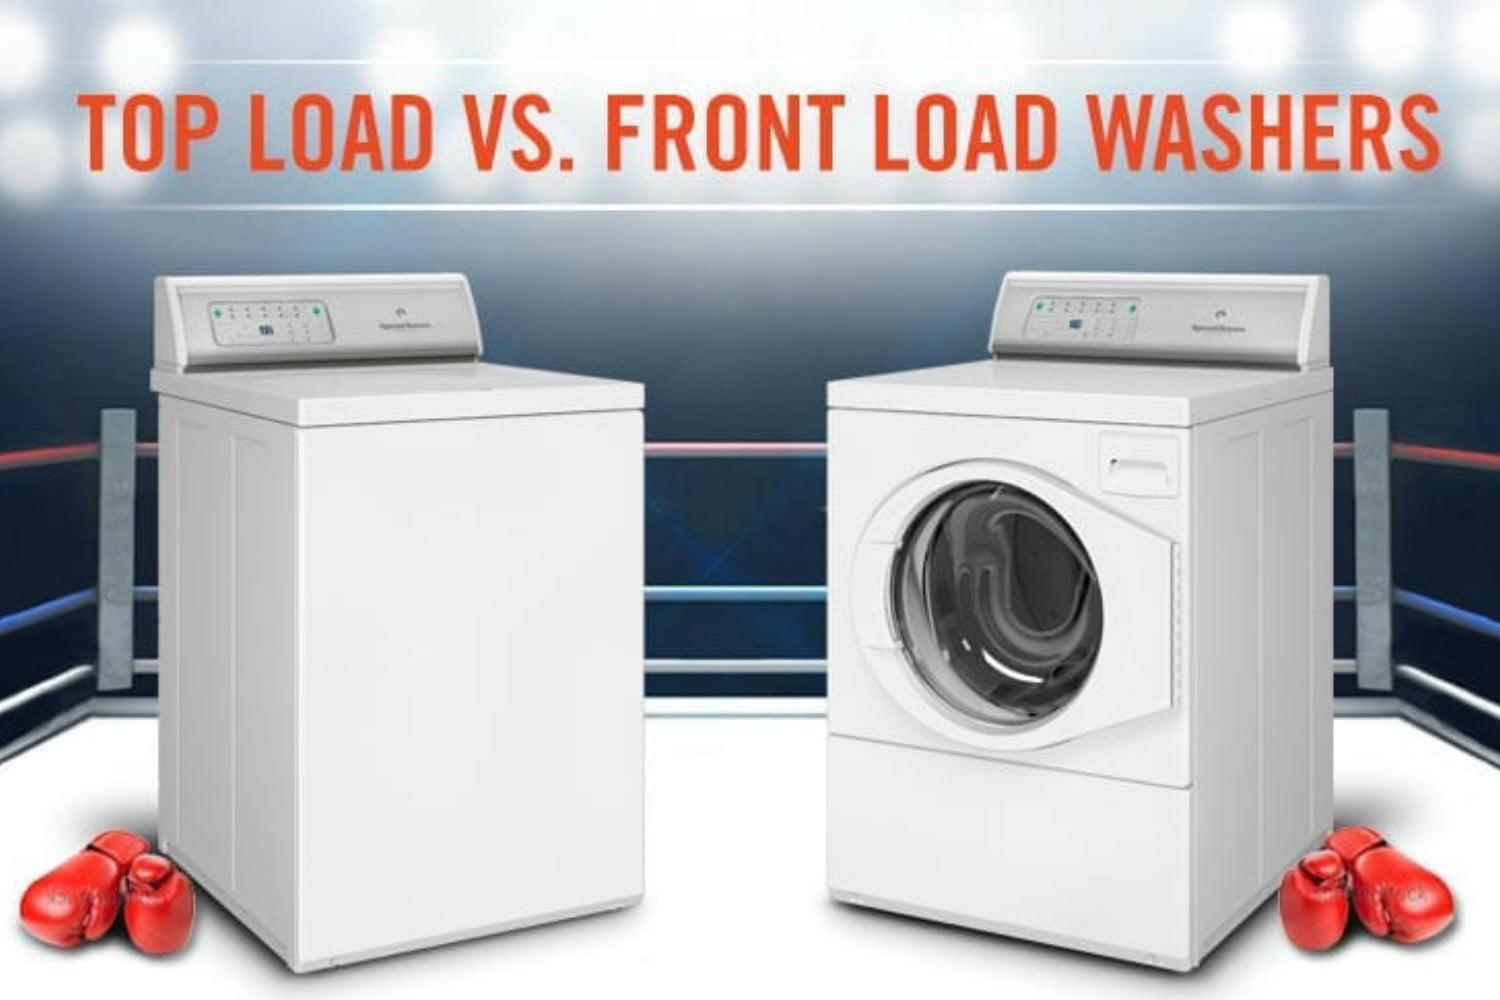 These Are The Best Cheap Washer And Dryer Deals For October 2020